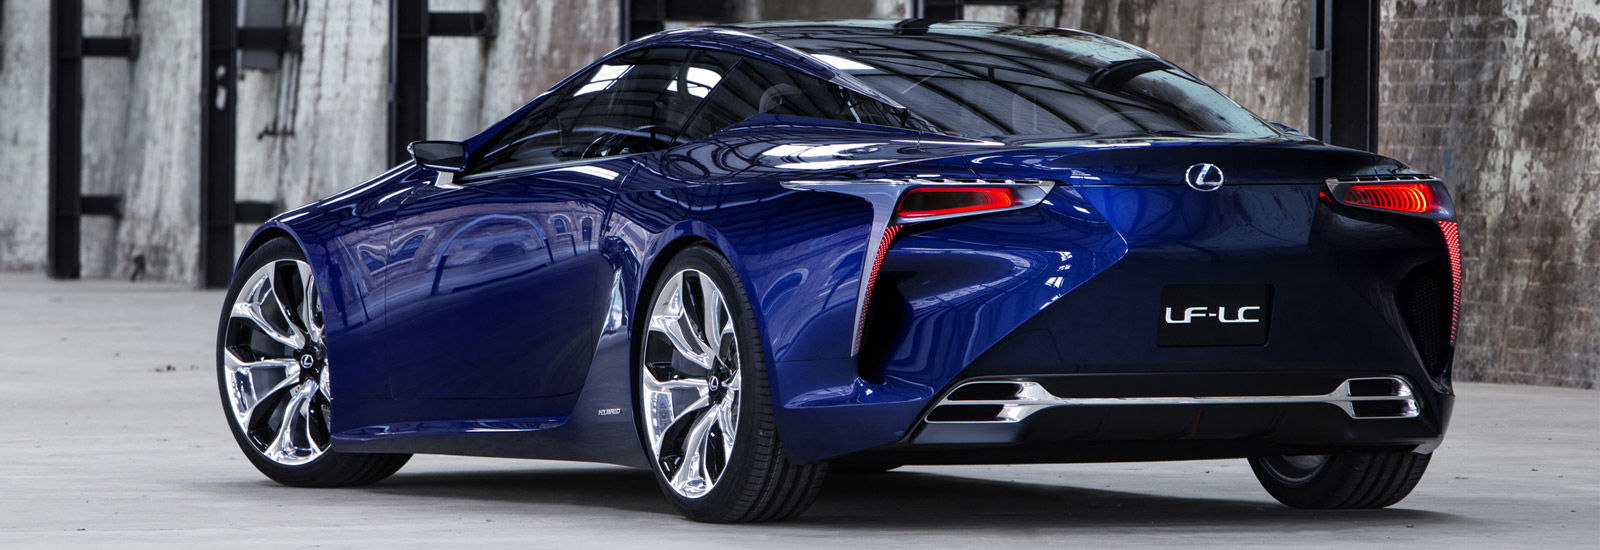 2018 Lexus LC F Price And Release Date